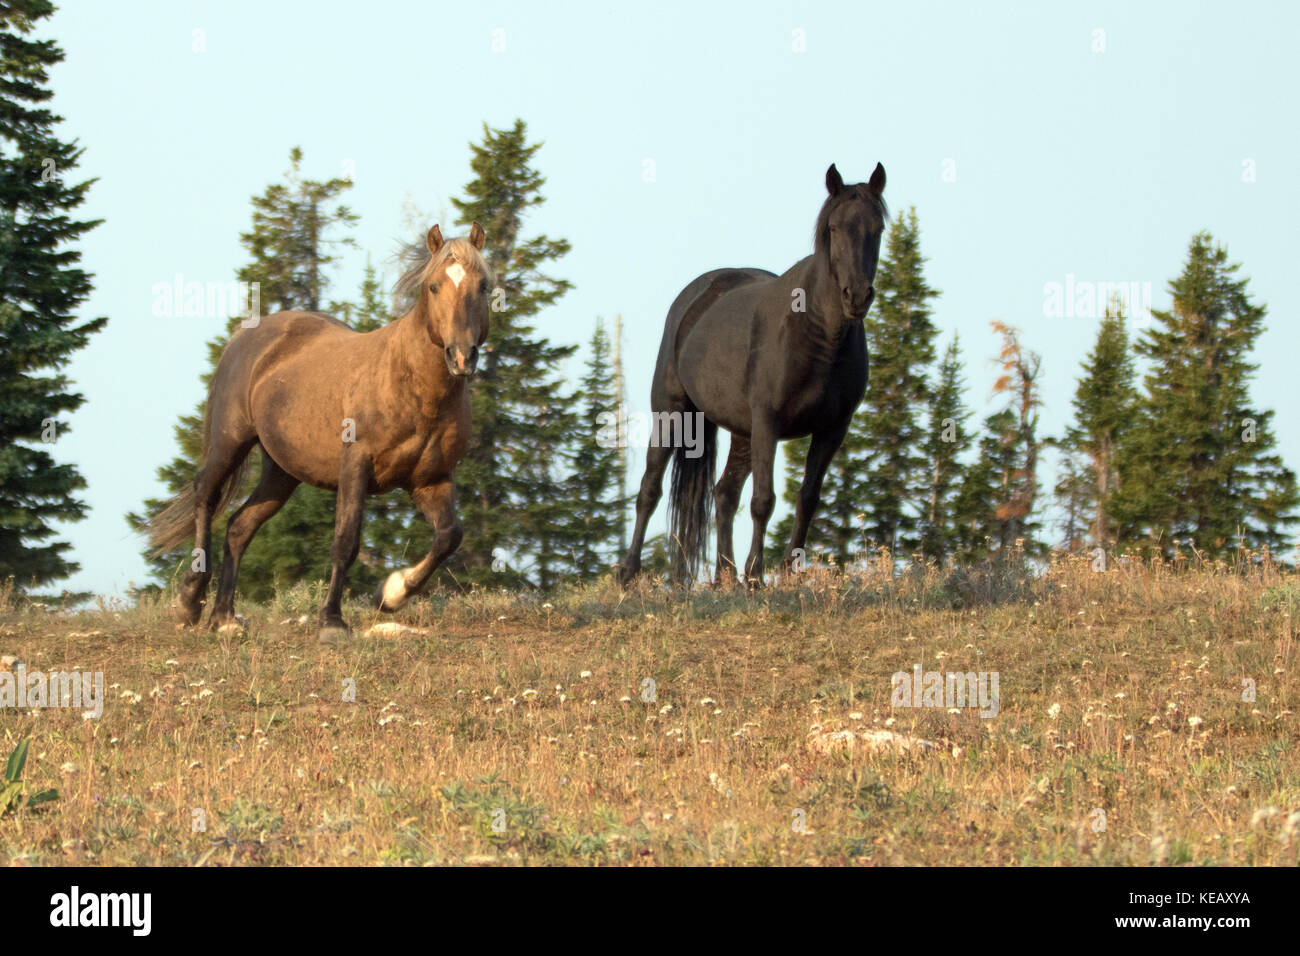 Sooty Palomino And Black Stallions Wild Horses On A Ridge In The Stock Photo Alamy